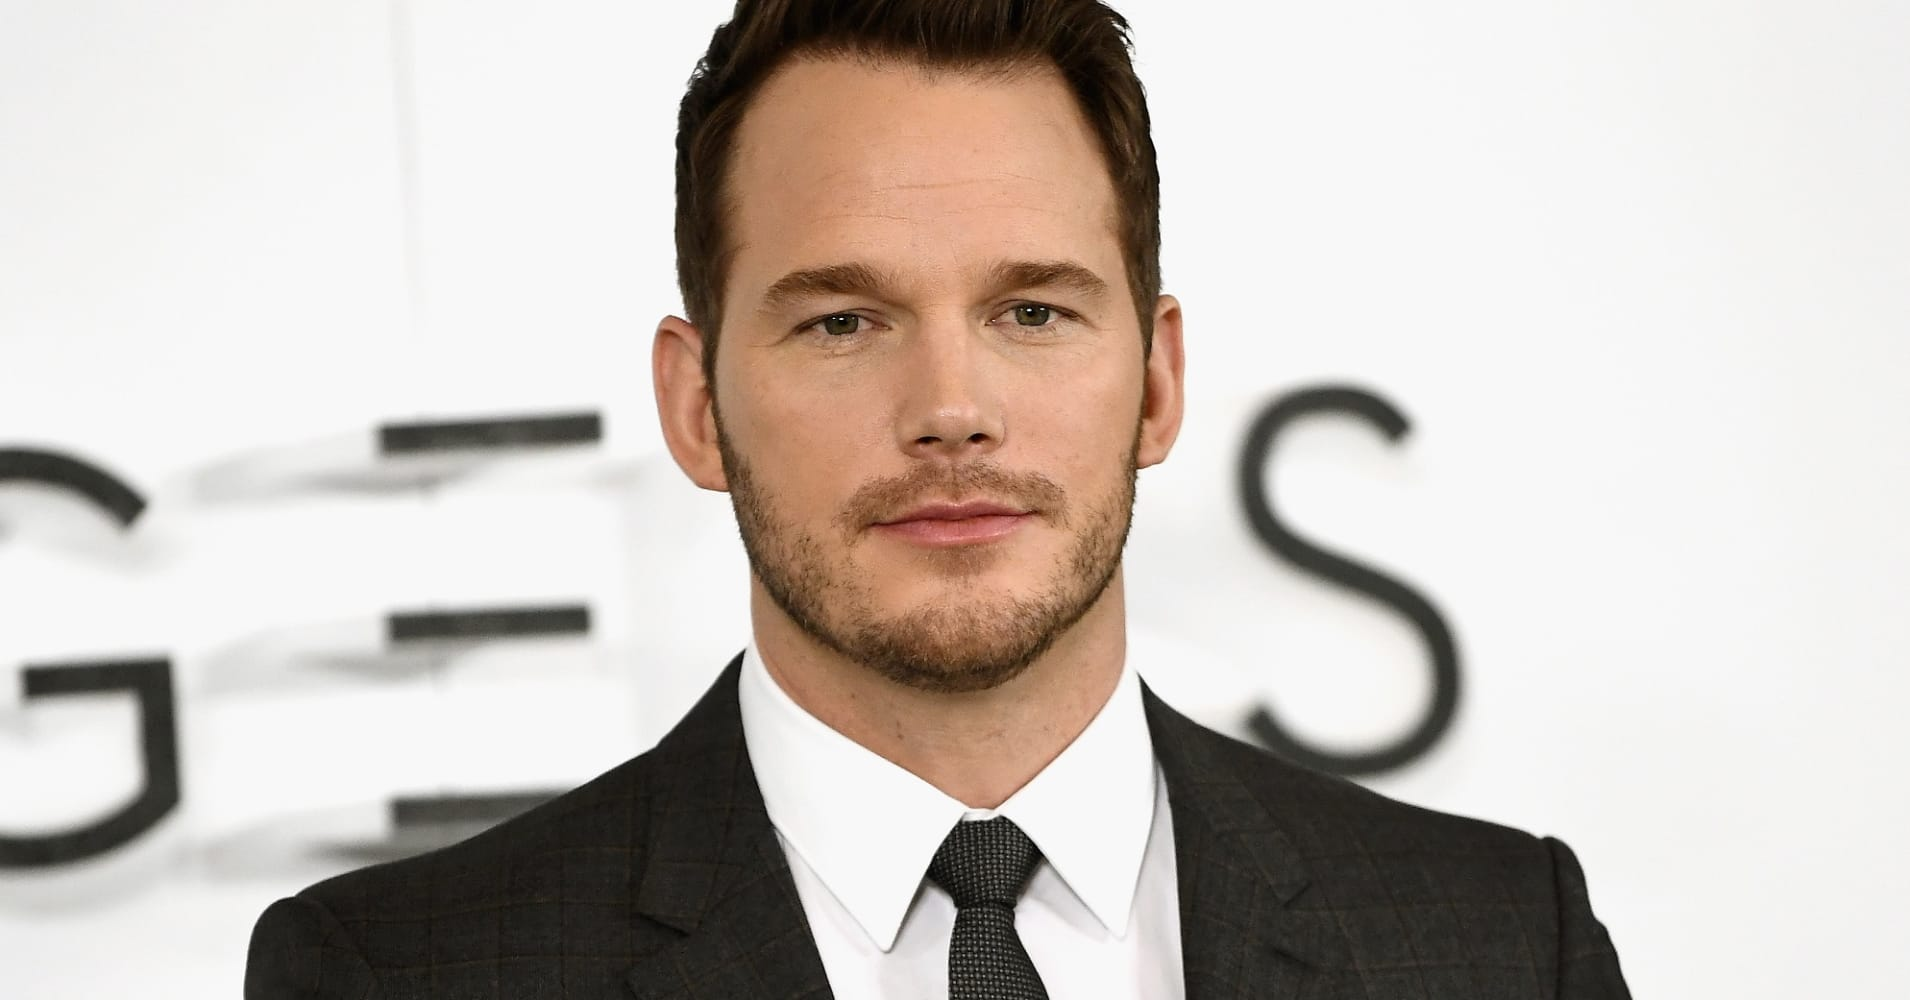 Chris Pratt has been voted one of the most attractive actors in Hollywood.